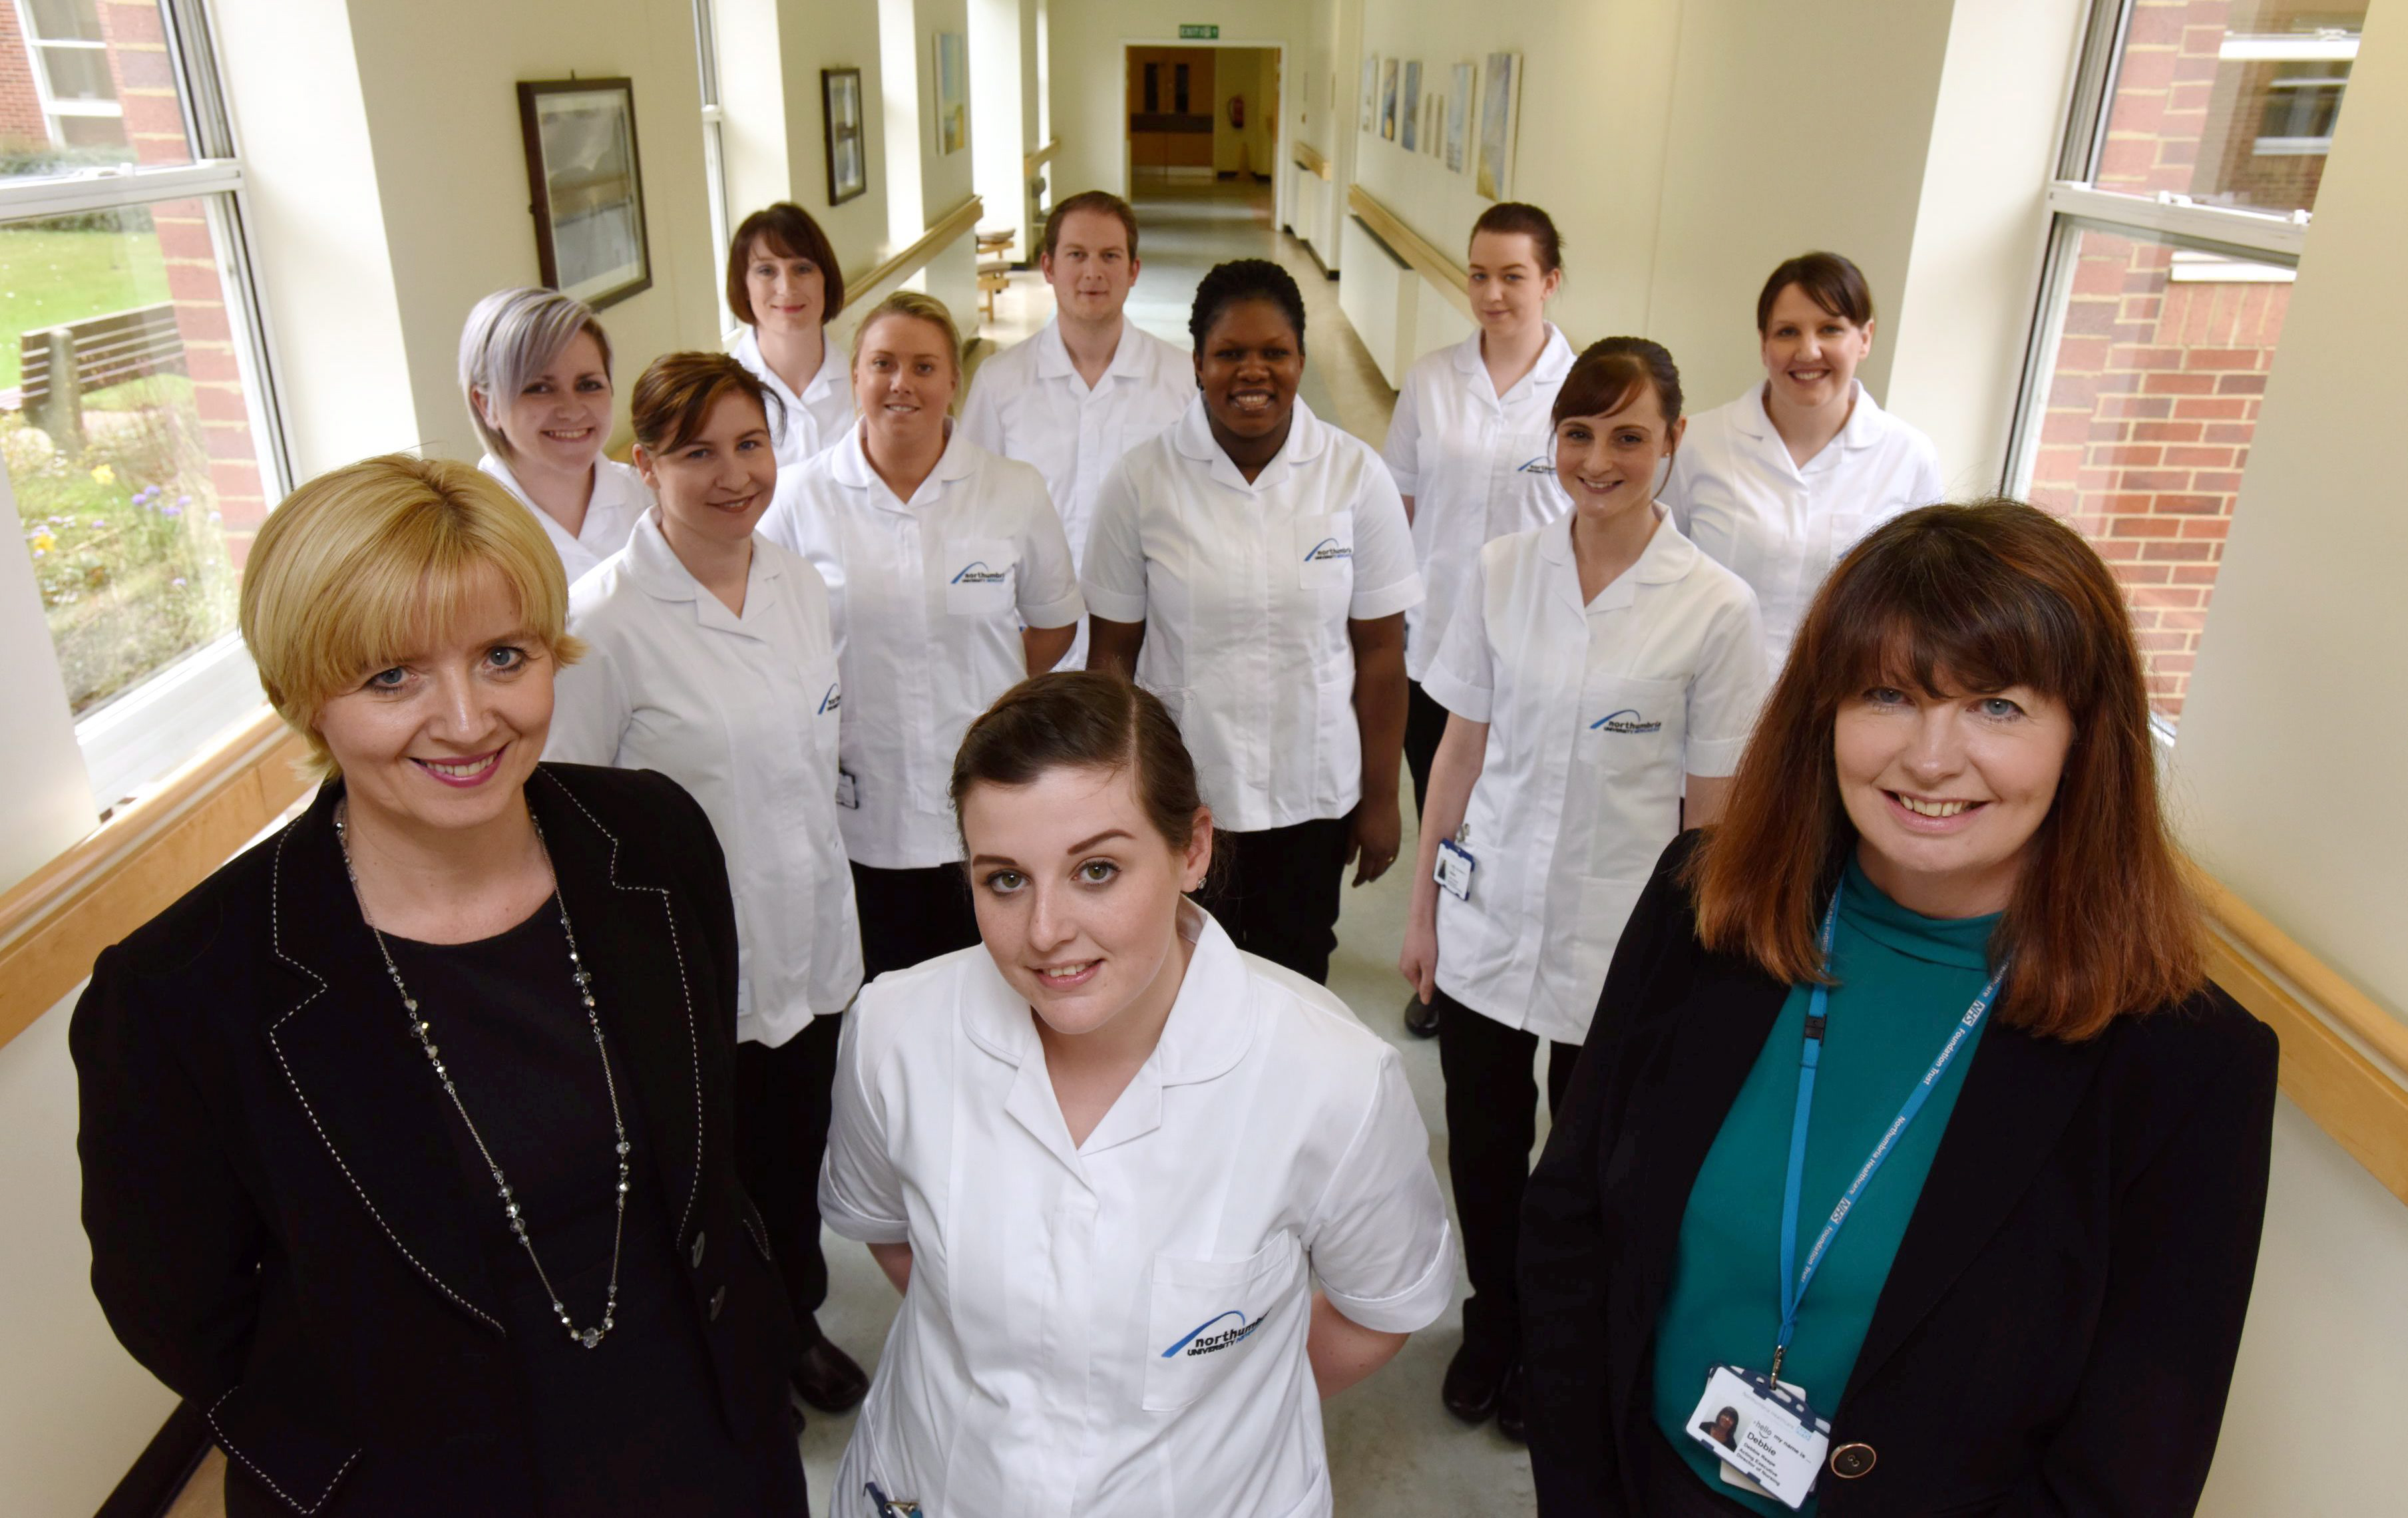 Unique trust and university partnership prepares nursing graduates the Northumbria way